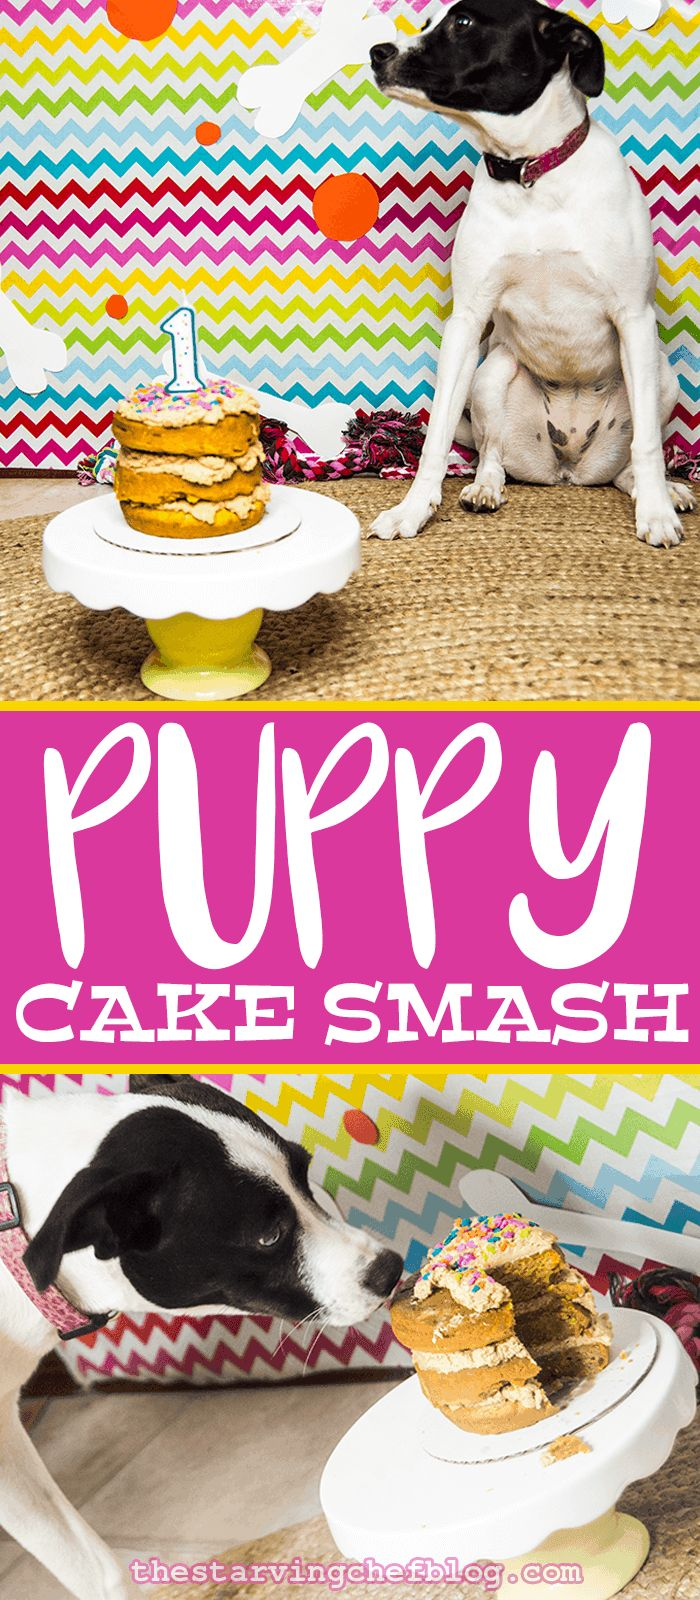 The Starving Chef | Puppy Cake Smash! It's Luna's first birthday - so we threw a birthday for our dog!